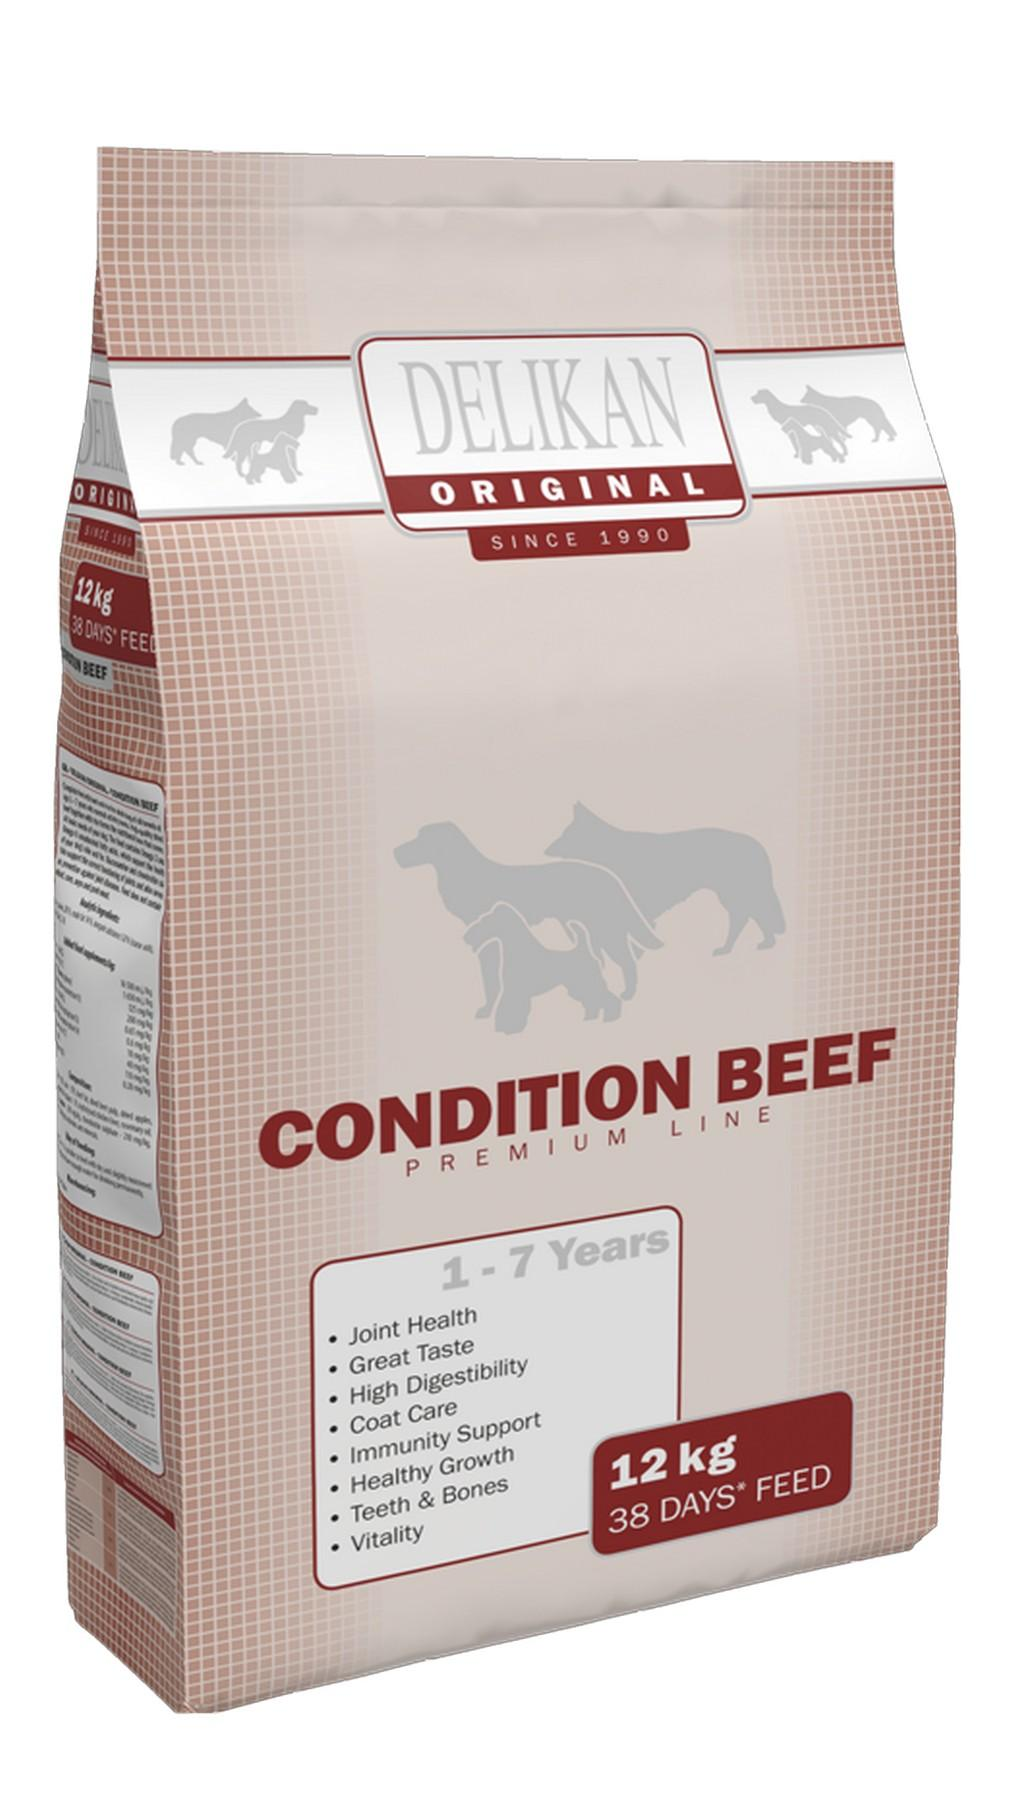 Delikan - ORIGINAL Condition Beef 12kg, 28/14